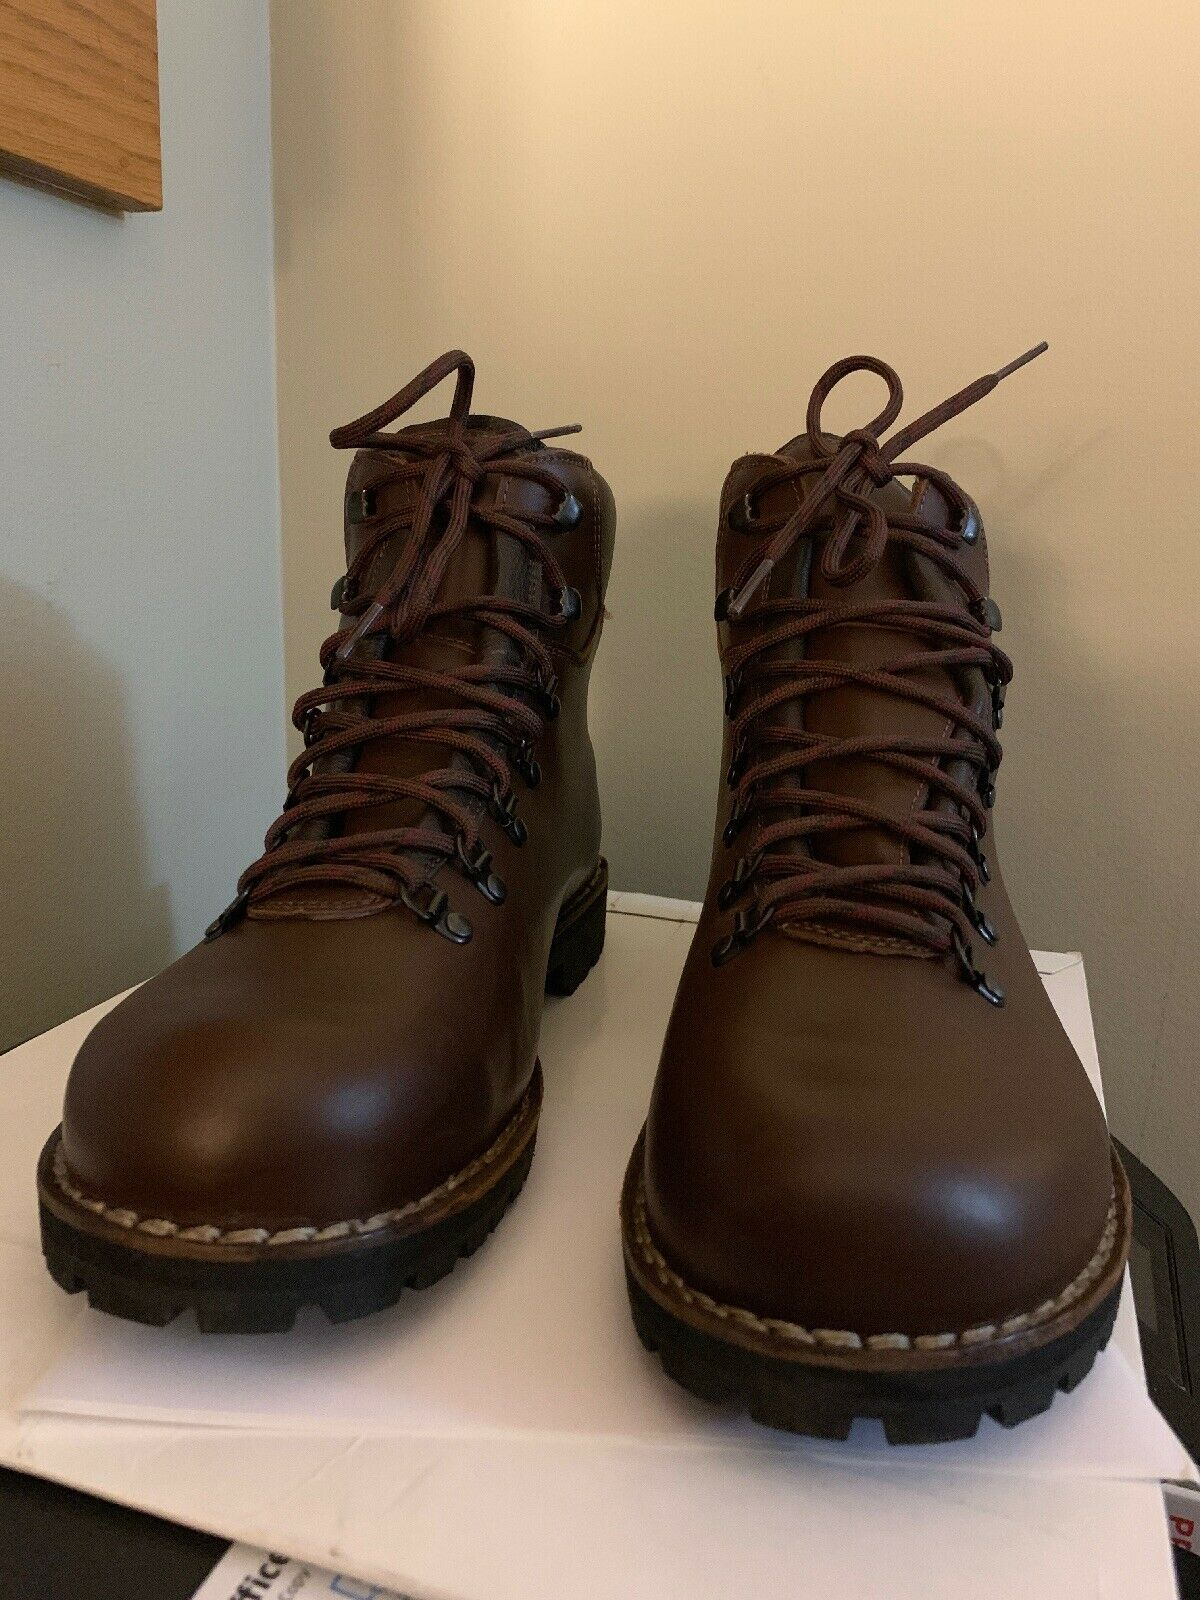 New MENS ALICO TAHOE LEATHER HIKING BOOTS - BROWN SIZE 11 - MSRP